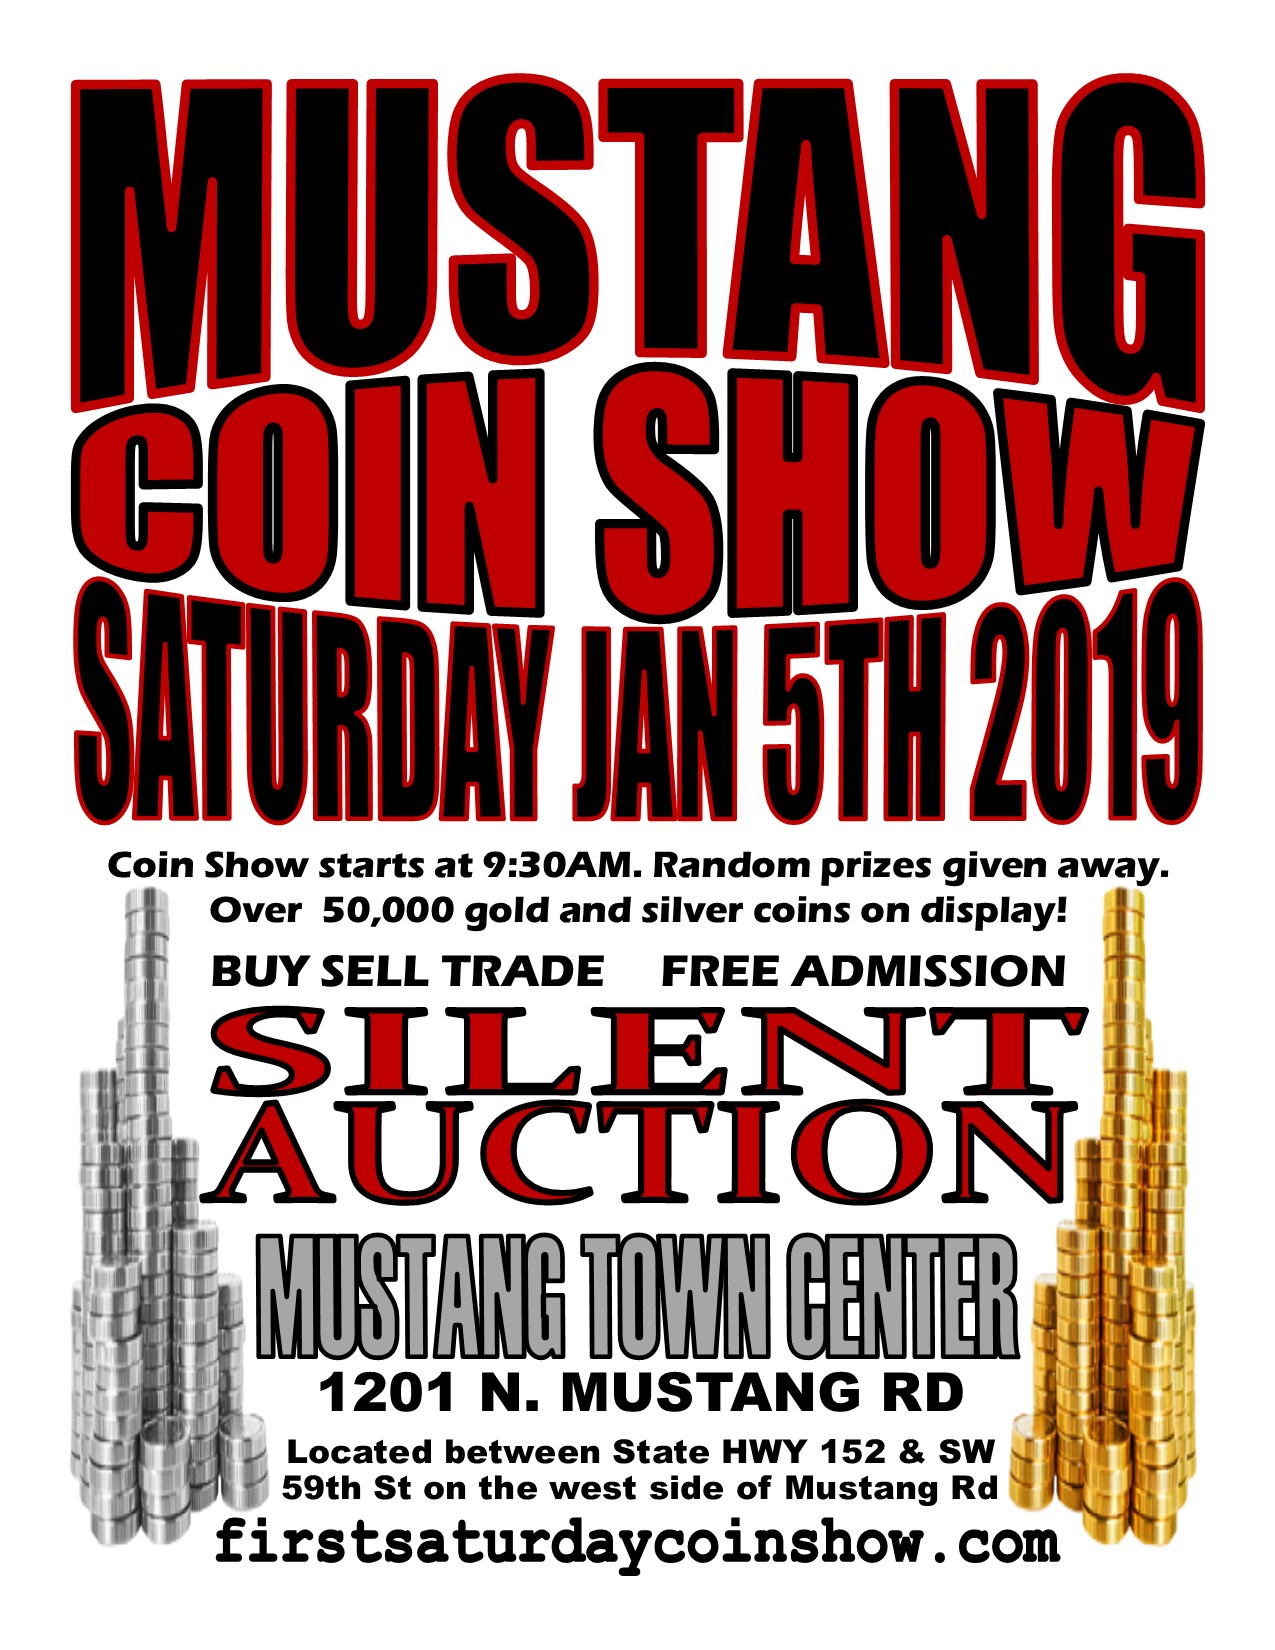 MUSTANG COIN SHOW